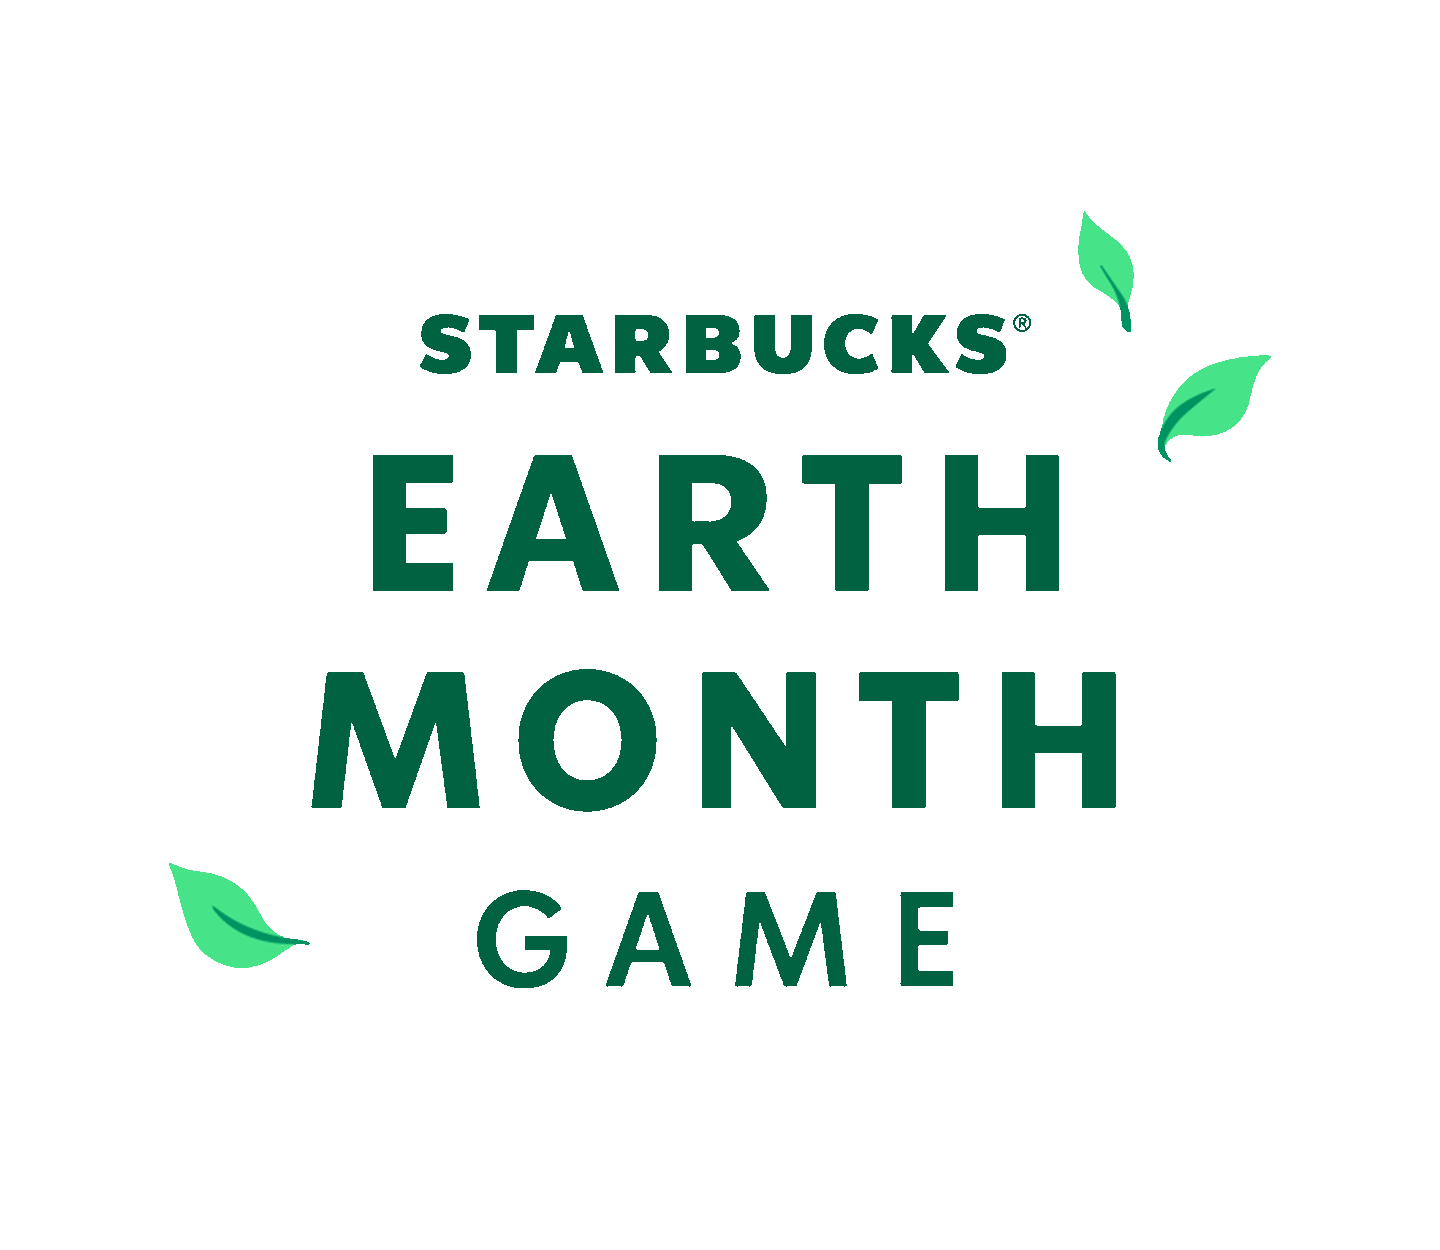 Illustrative Starbucks Earth Month Game logo surrounded by illustrated leaves.